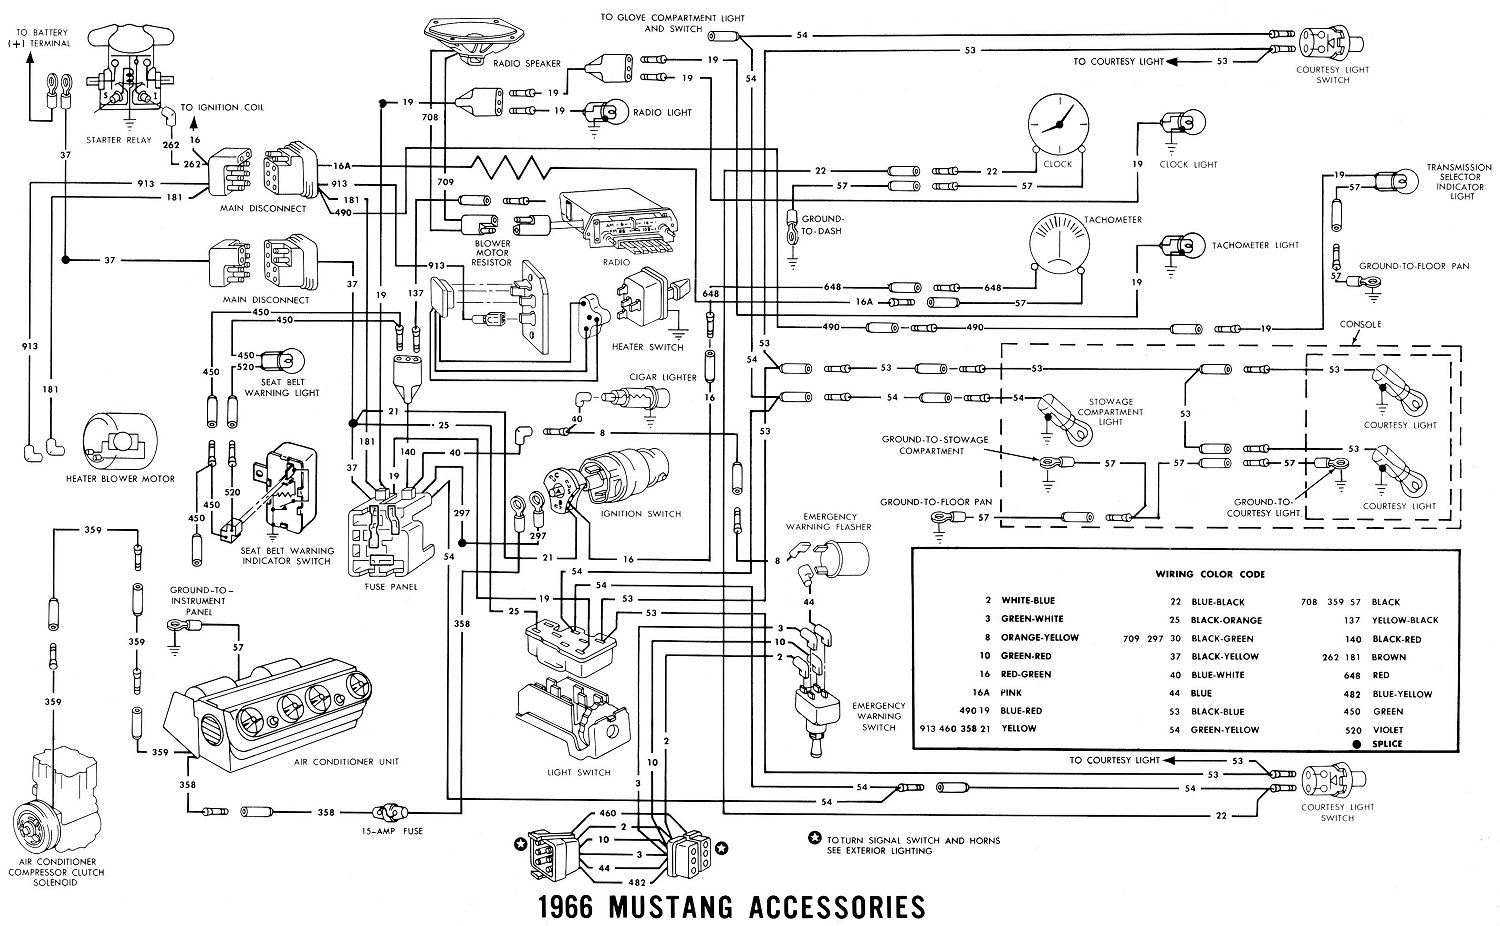 1964 f100 wiring diagram printable wiring diagram schematic harness